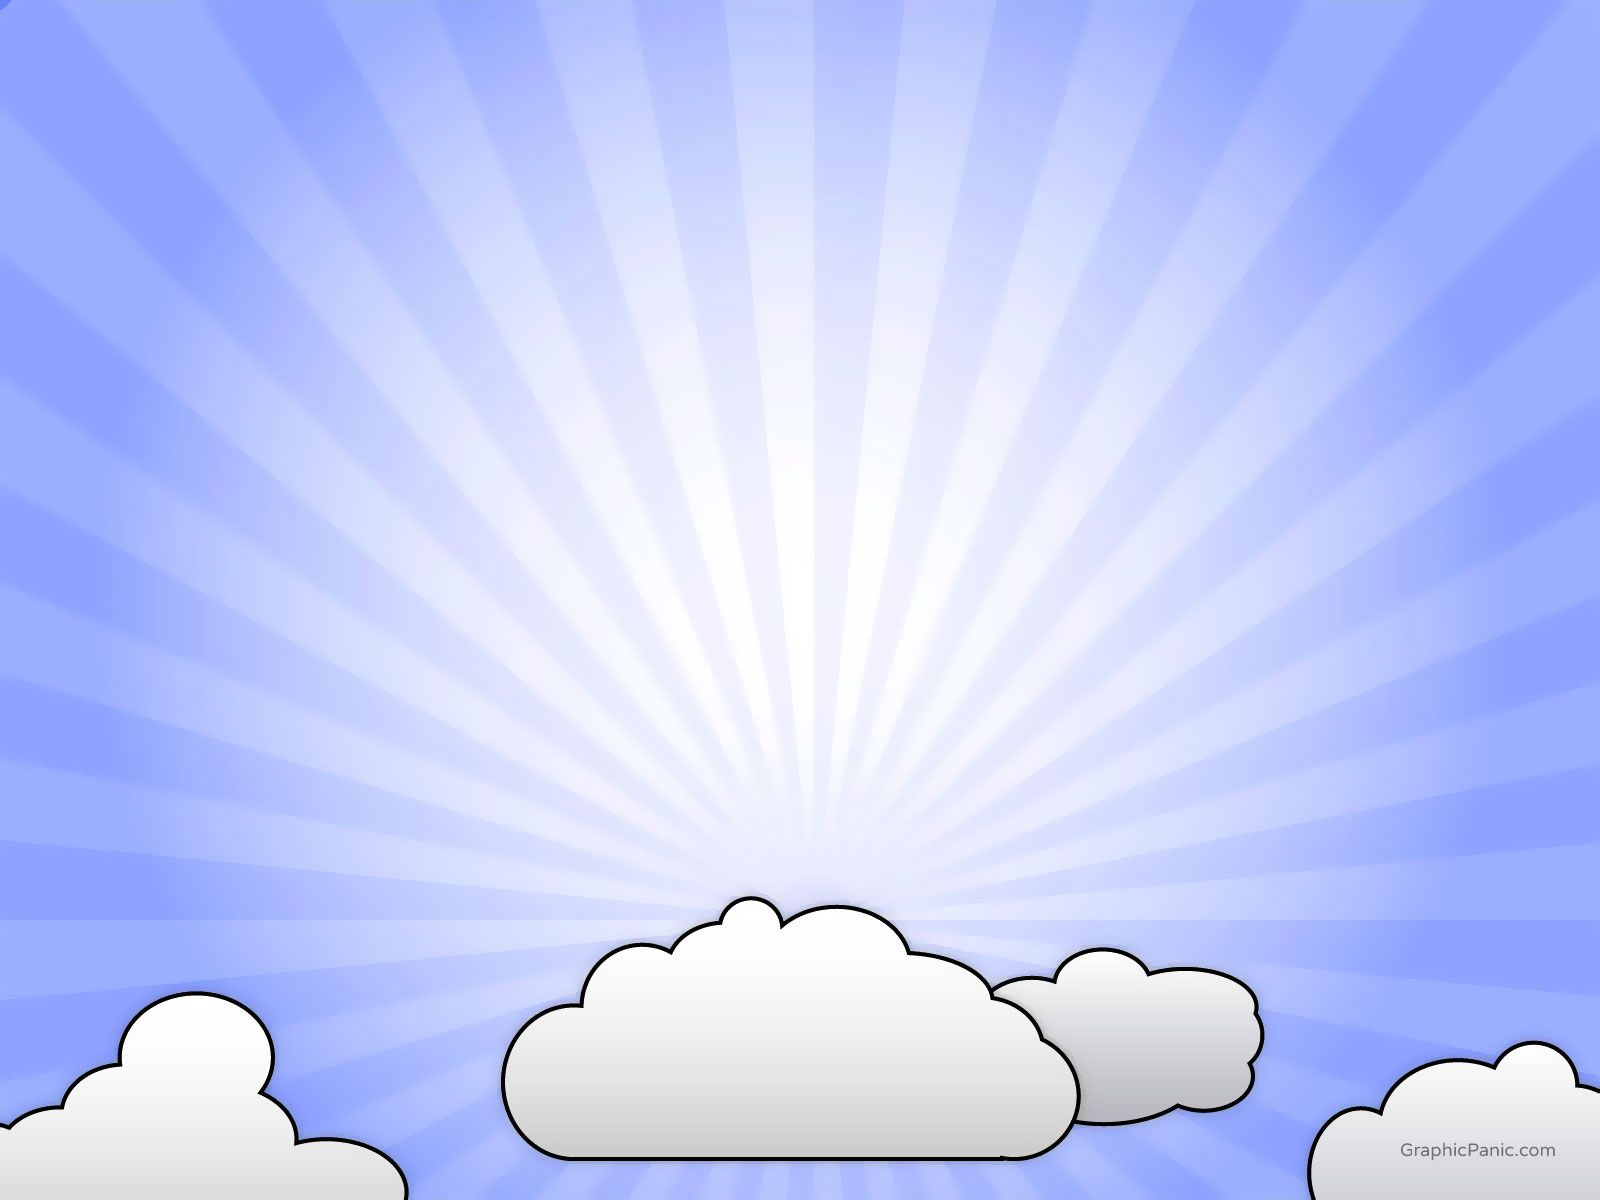 Cloud background powerpoint background and templates powerpoint cloud background powerpoint background and templates toneelgroepblik Images